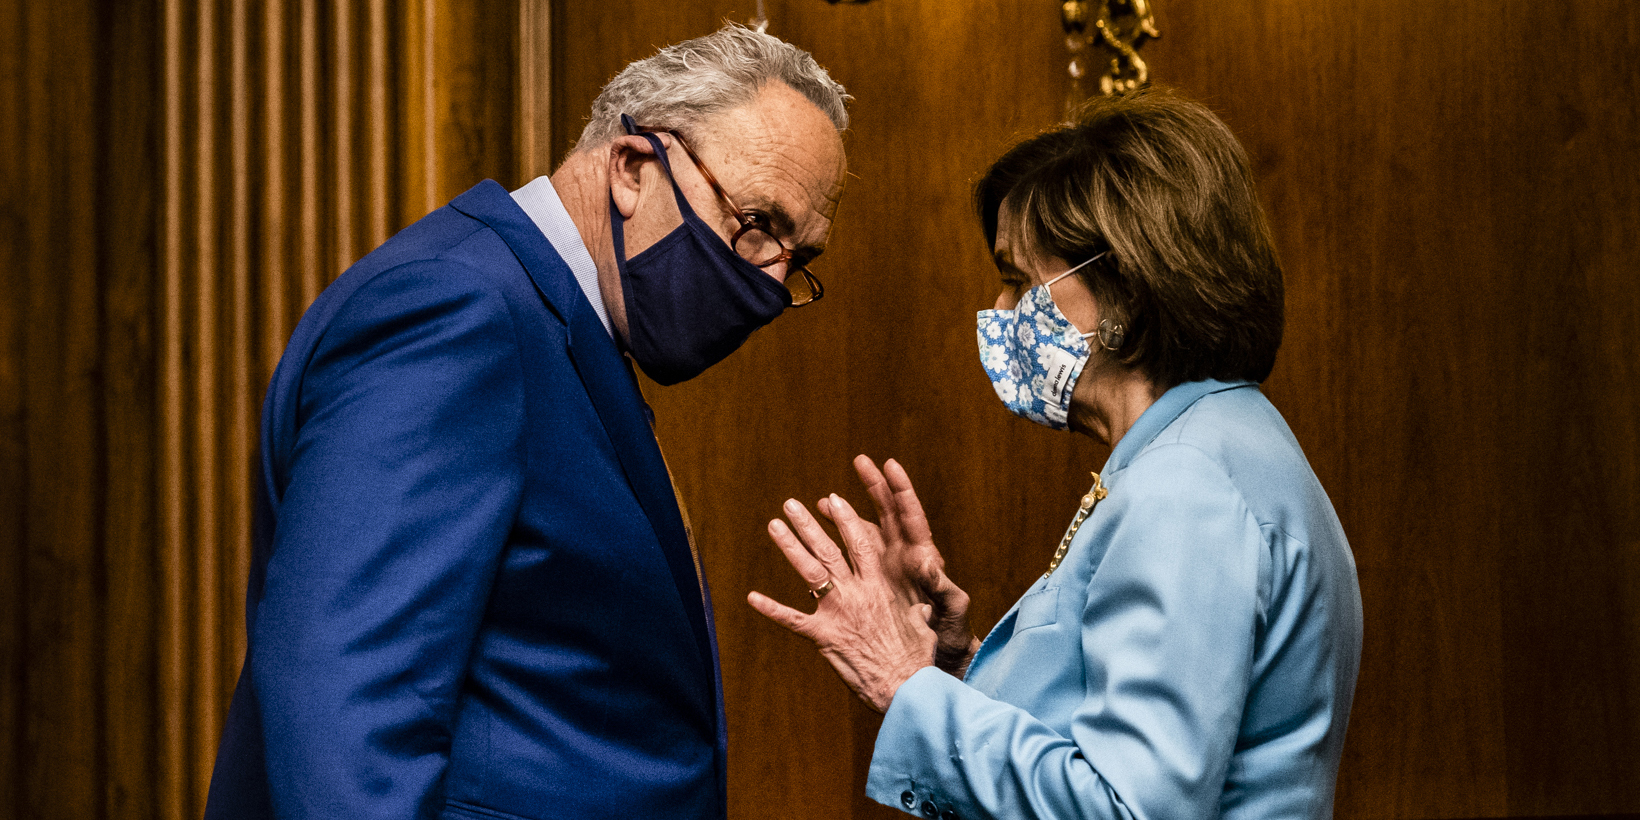 Democratic leaders have lost their mojo